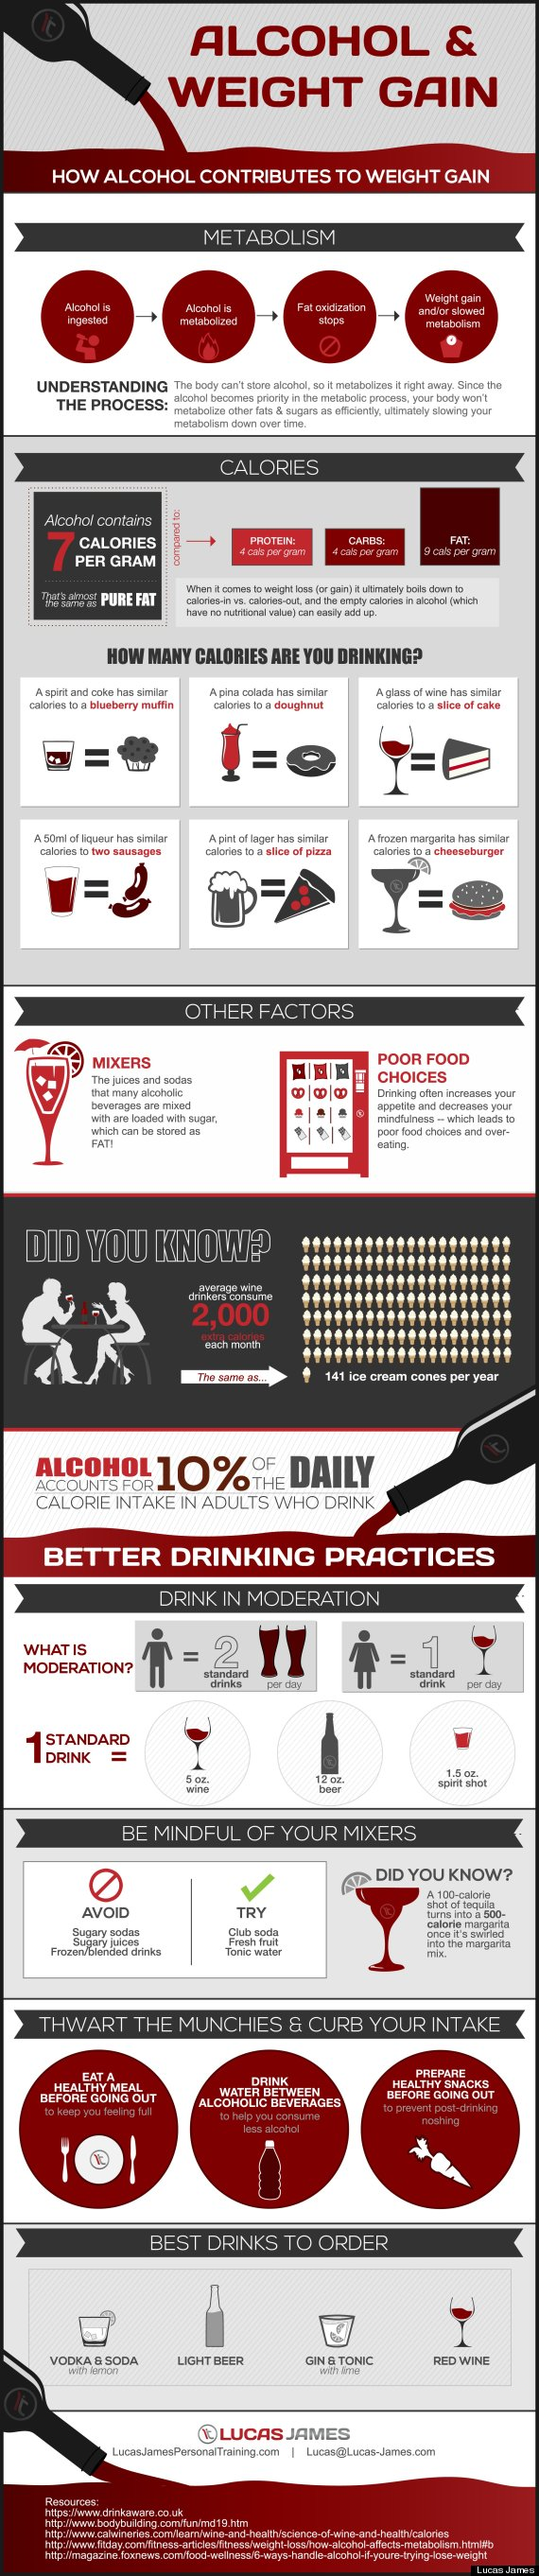 alcohol weight gain